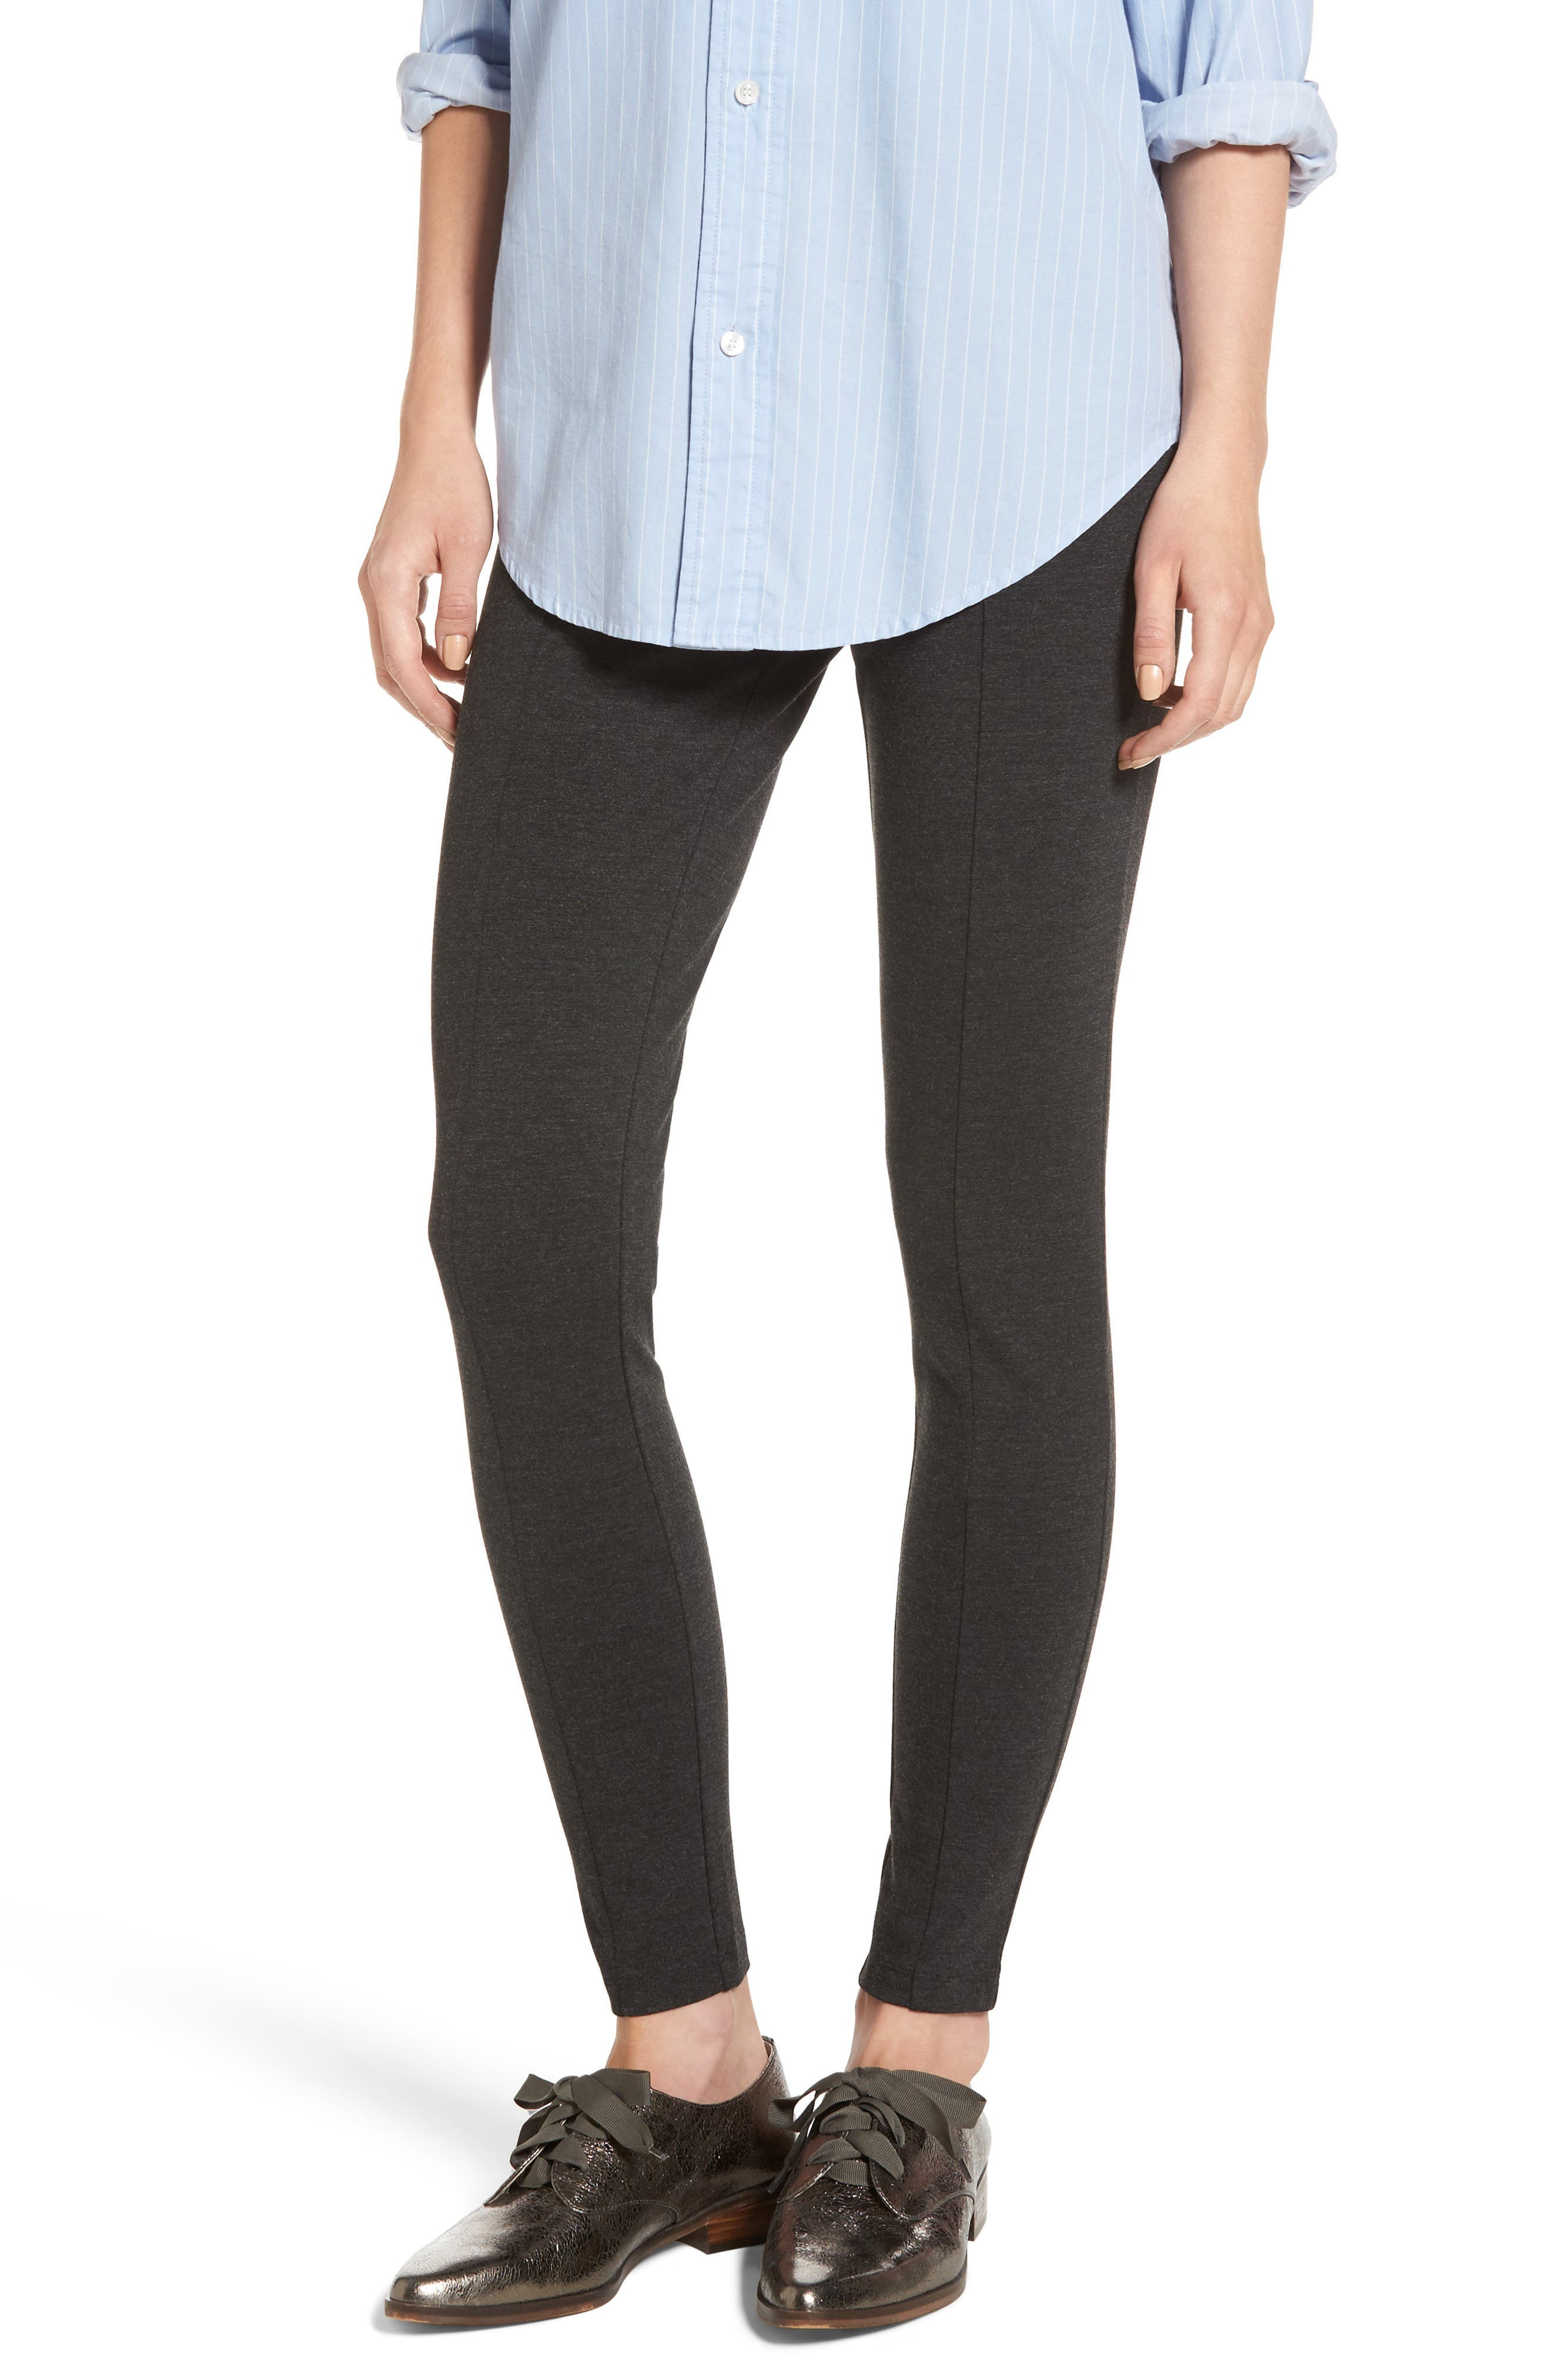 Seamed Ponte Knit Leggings,                         Main,                         color, Charcoal Grey